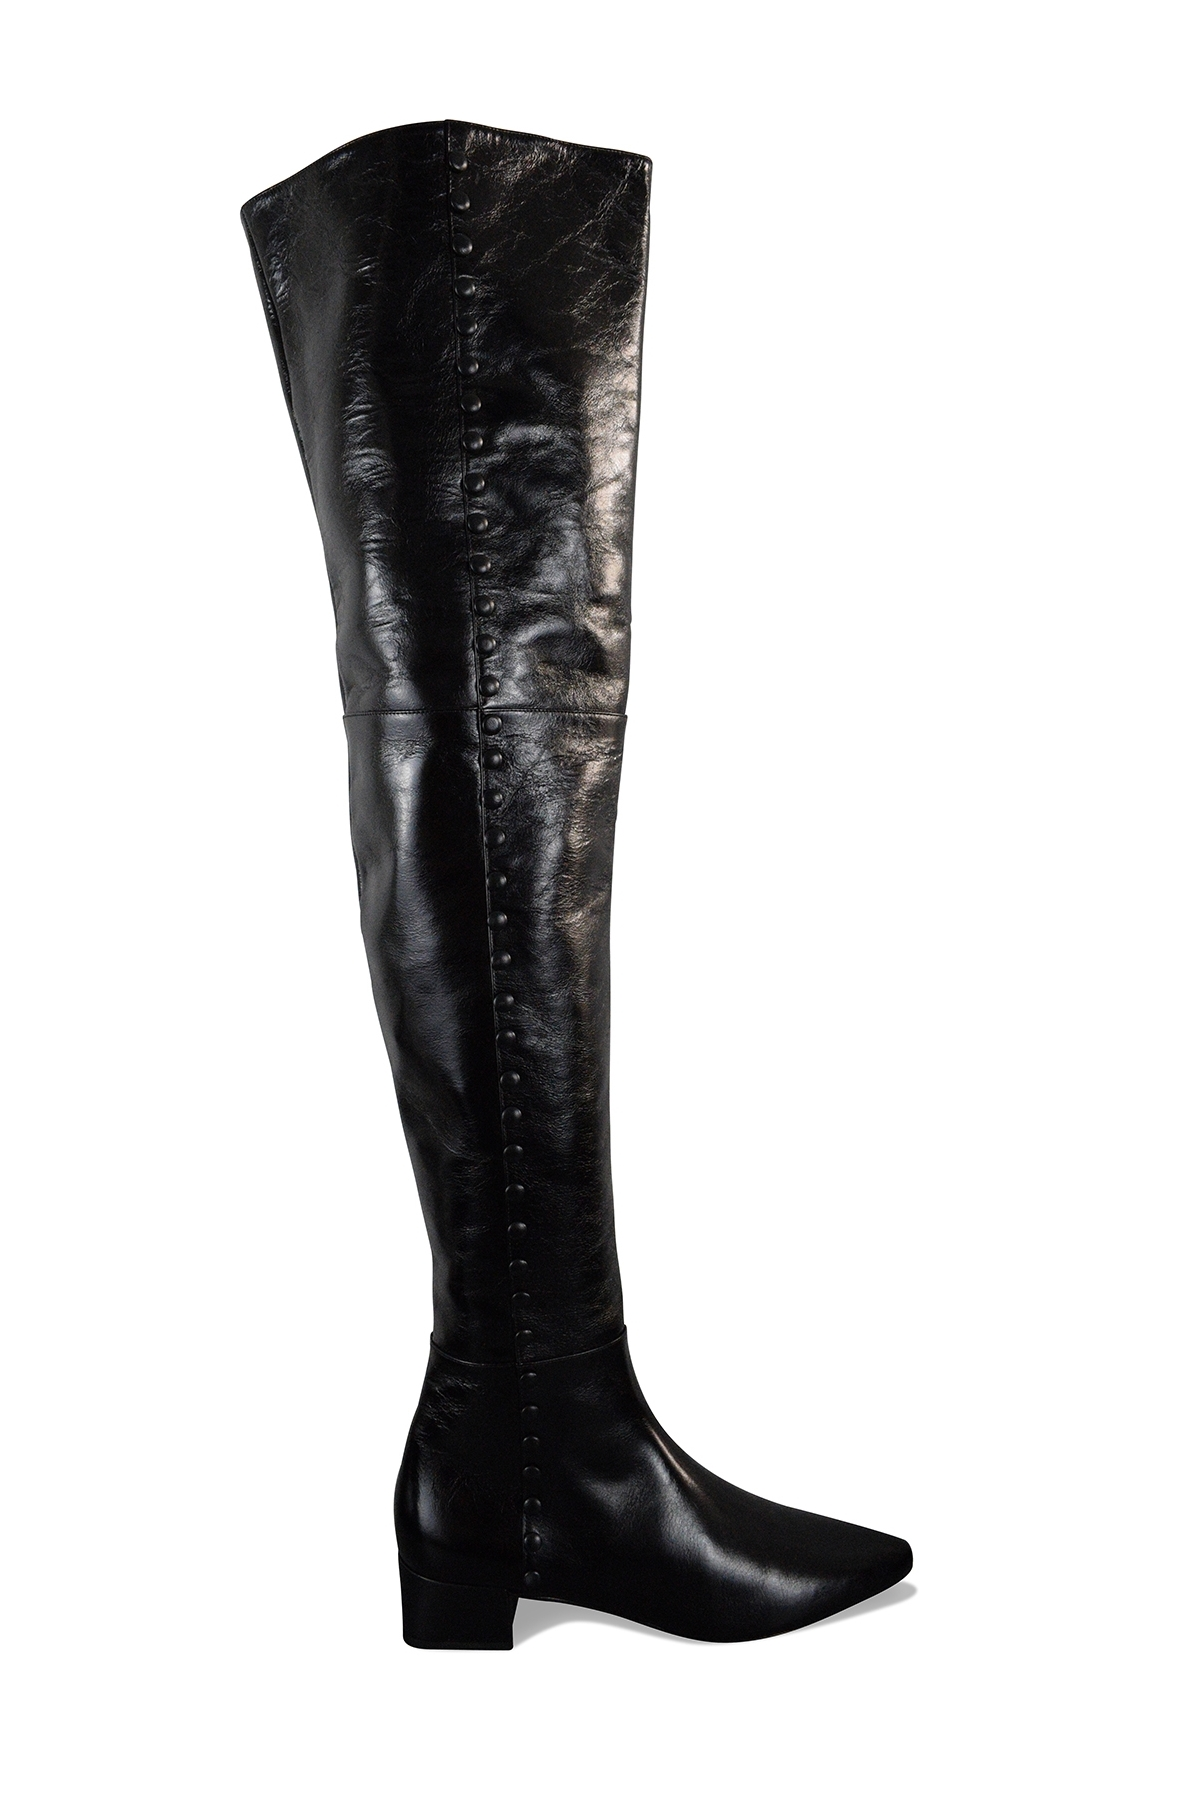 Saint Laurent over-the-knee boots in black shiny leather with decorative buttons